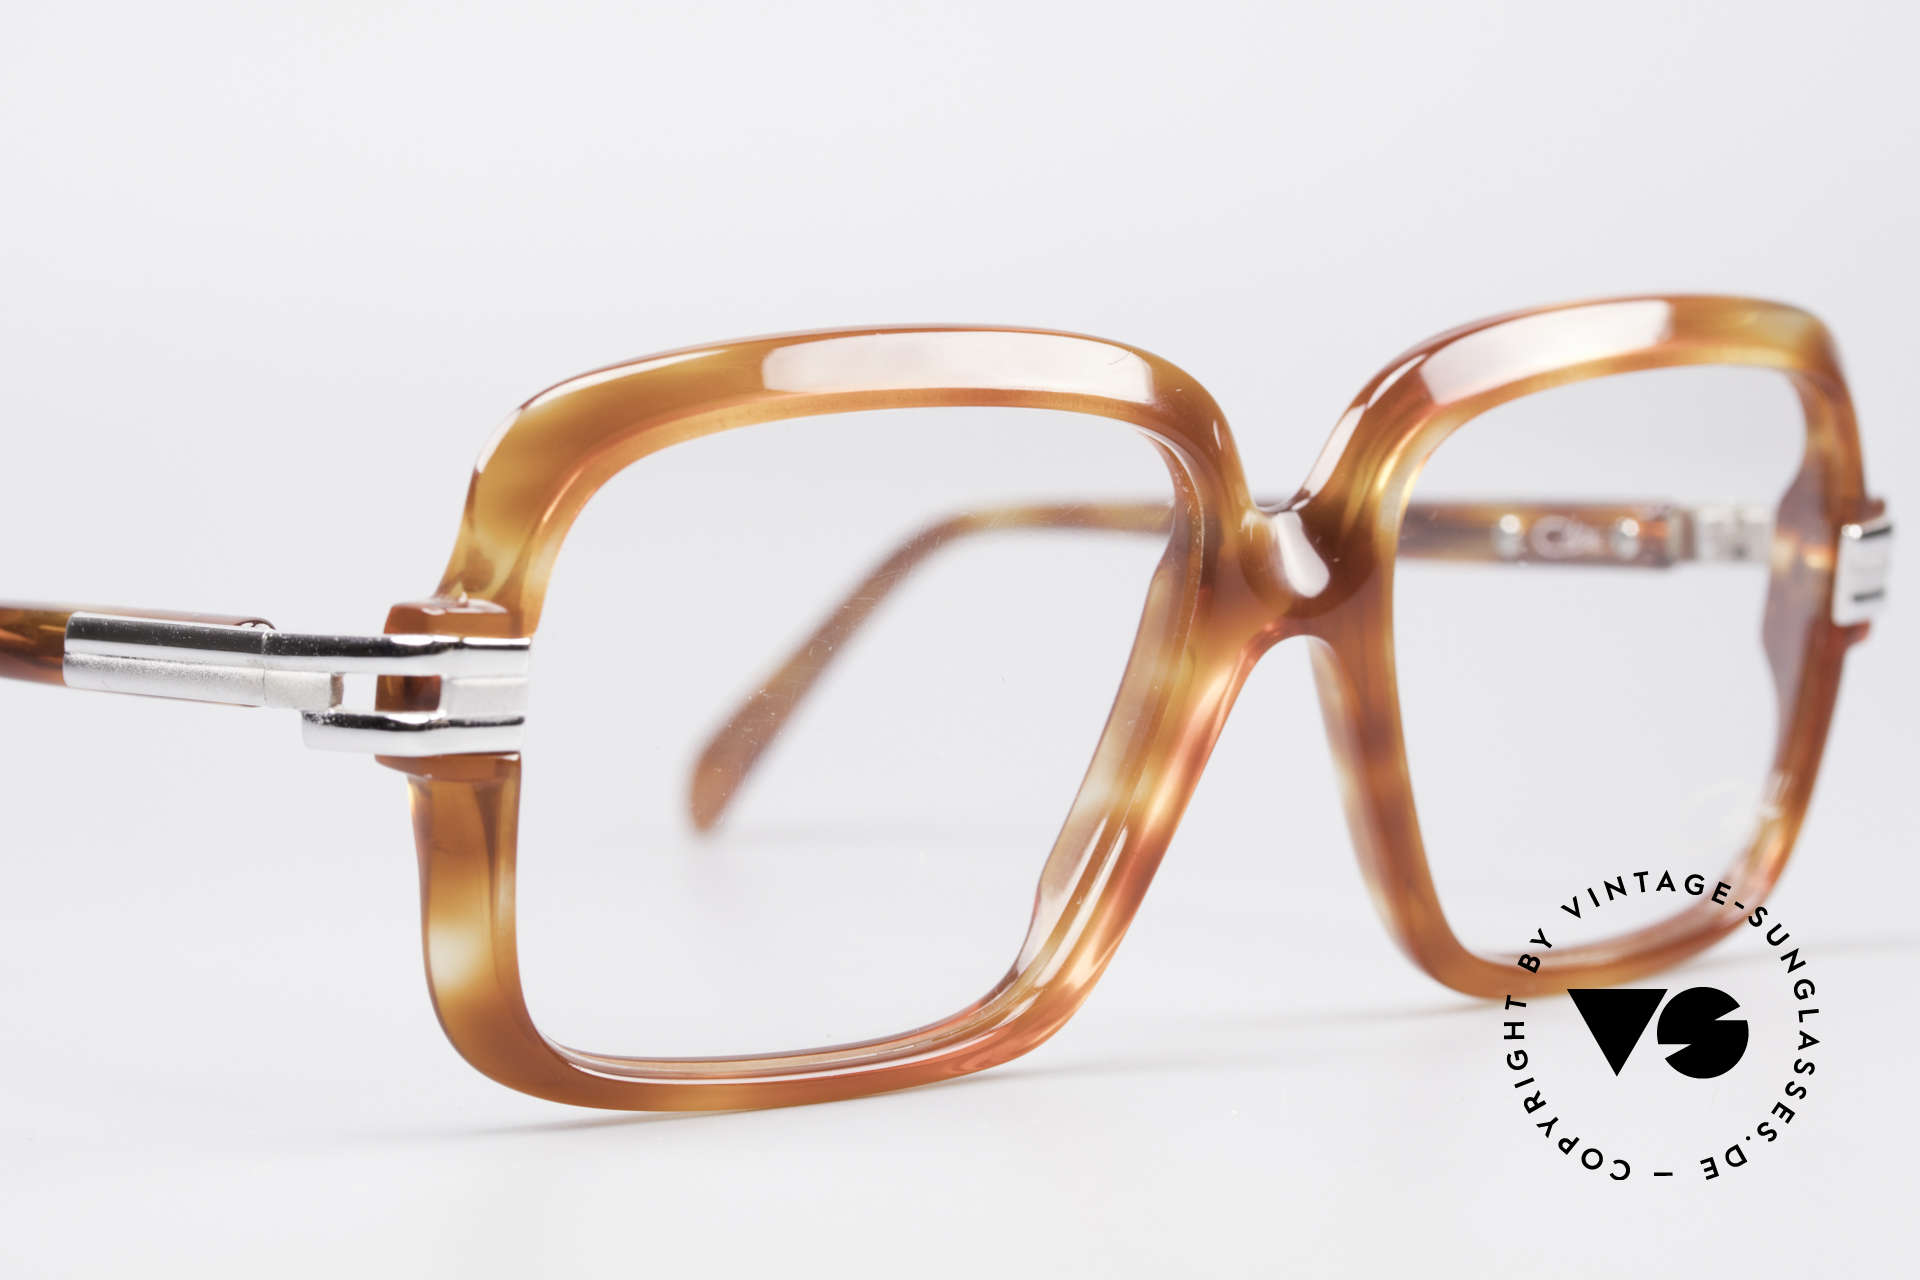 Cazal 605 70's Frame First Series, unworn original (NEW OLD STOCK), true collector's item, Made for Men